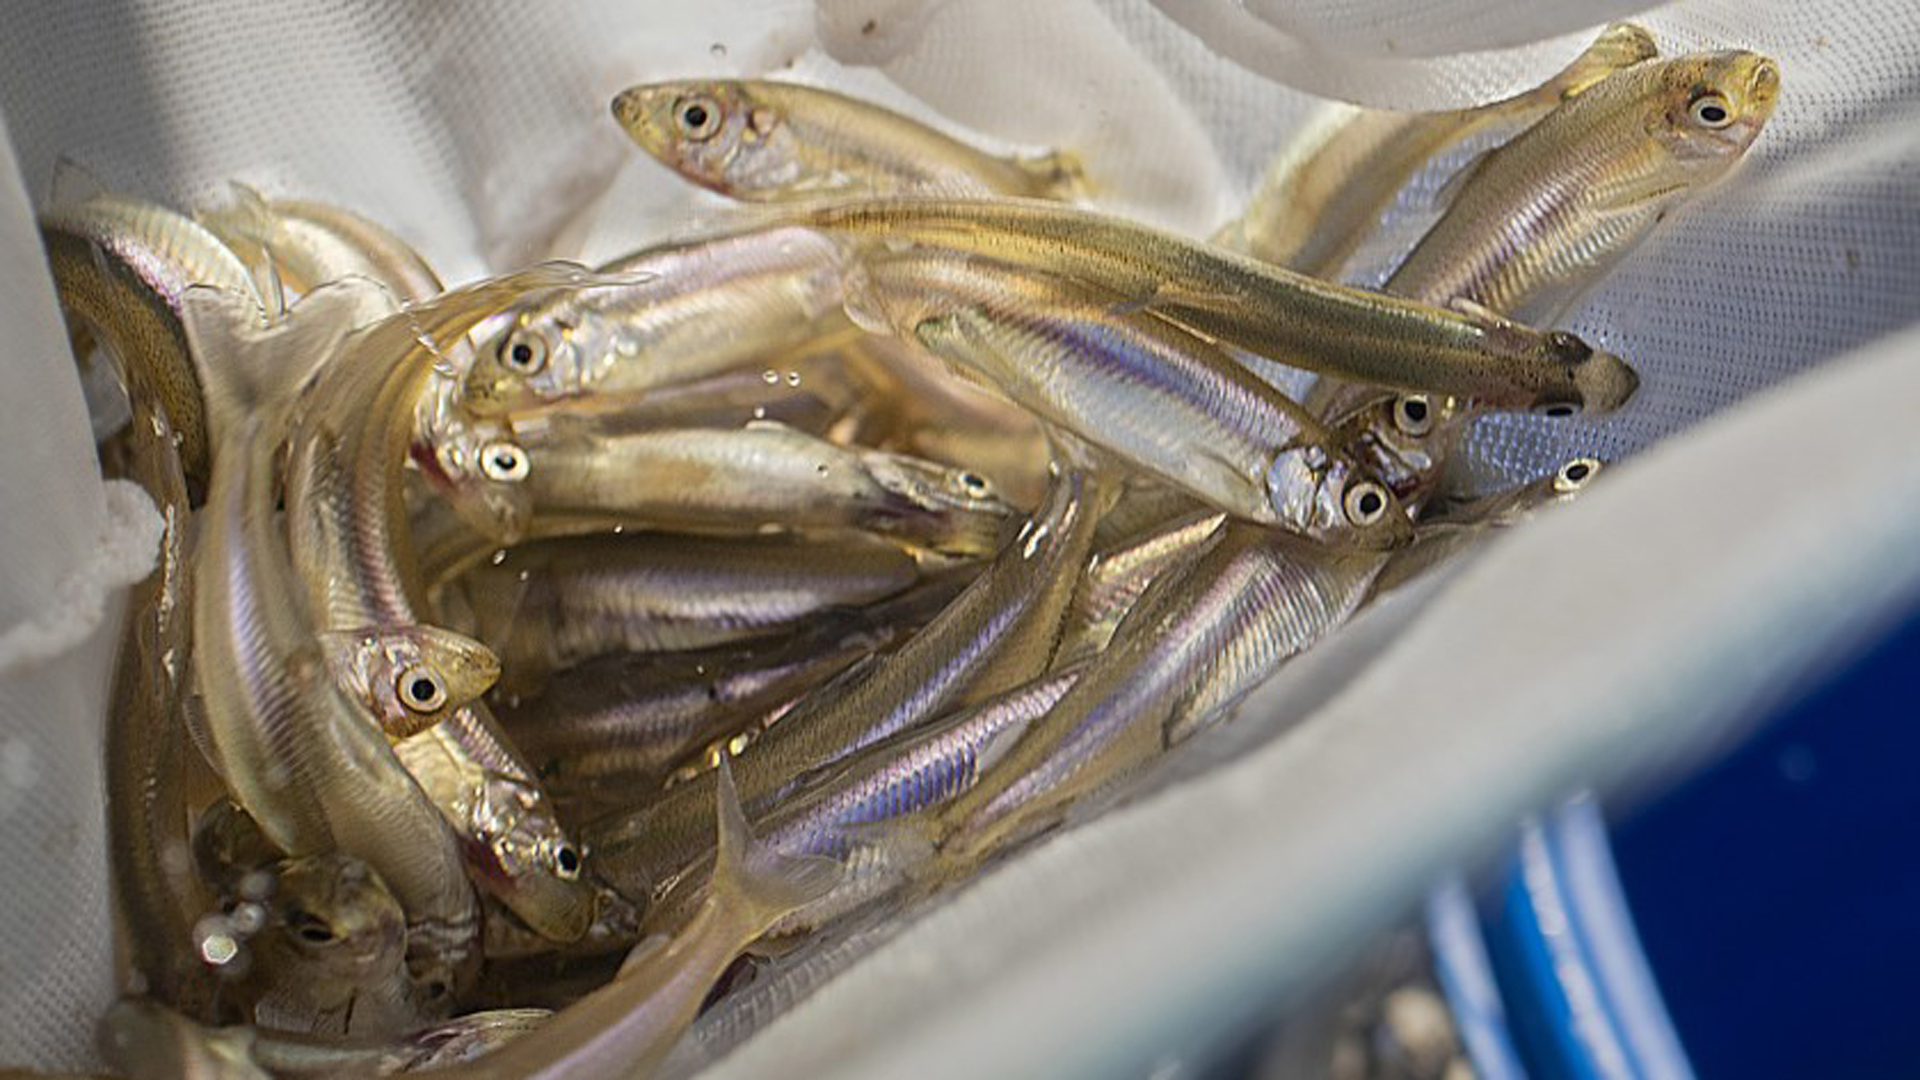 Massive water exports have upended the delta's natural hydrologic rhythms and helped push native fish, such as the delta smelt and winter-run Chinook salmon, to the brink of extinction. In this file photo, federally endangered delta smelt that were hatched at the UC Davis Fish Conservation & Culture Lab are transferred to a holding tank at the Aquarium of the Pacific in Long Beach.(Credit: Allen J. Schaben / Los Angeles Times)